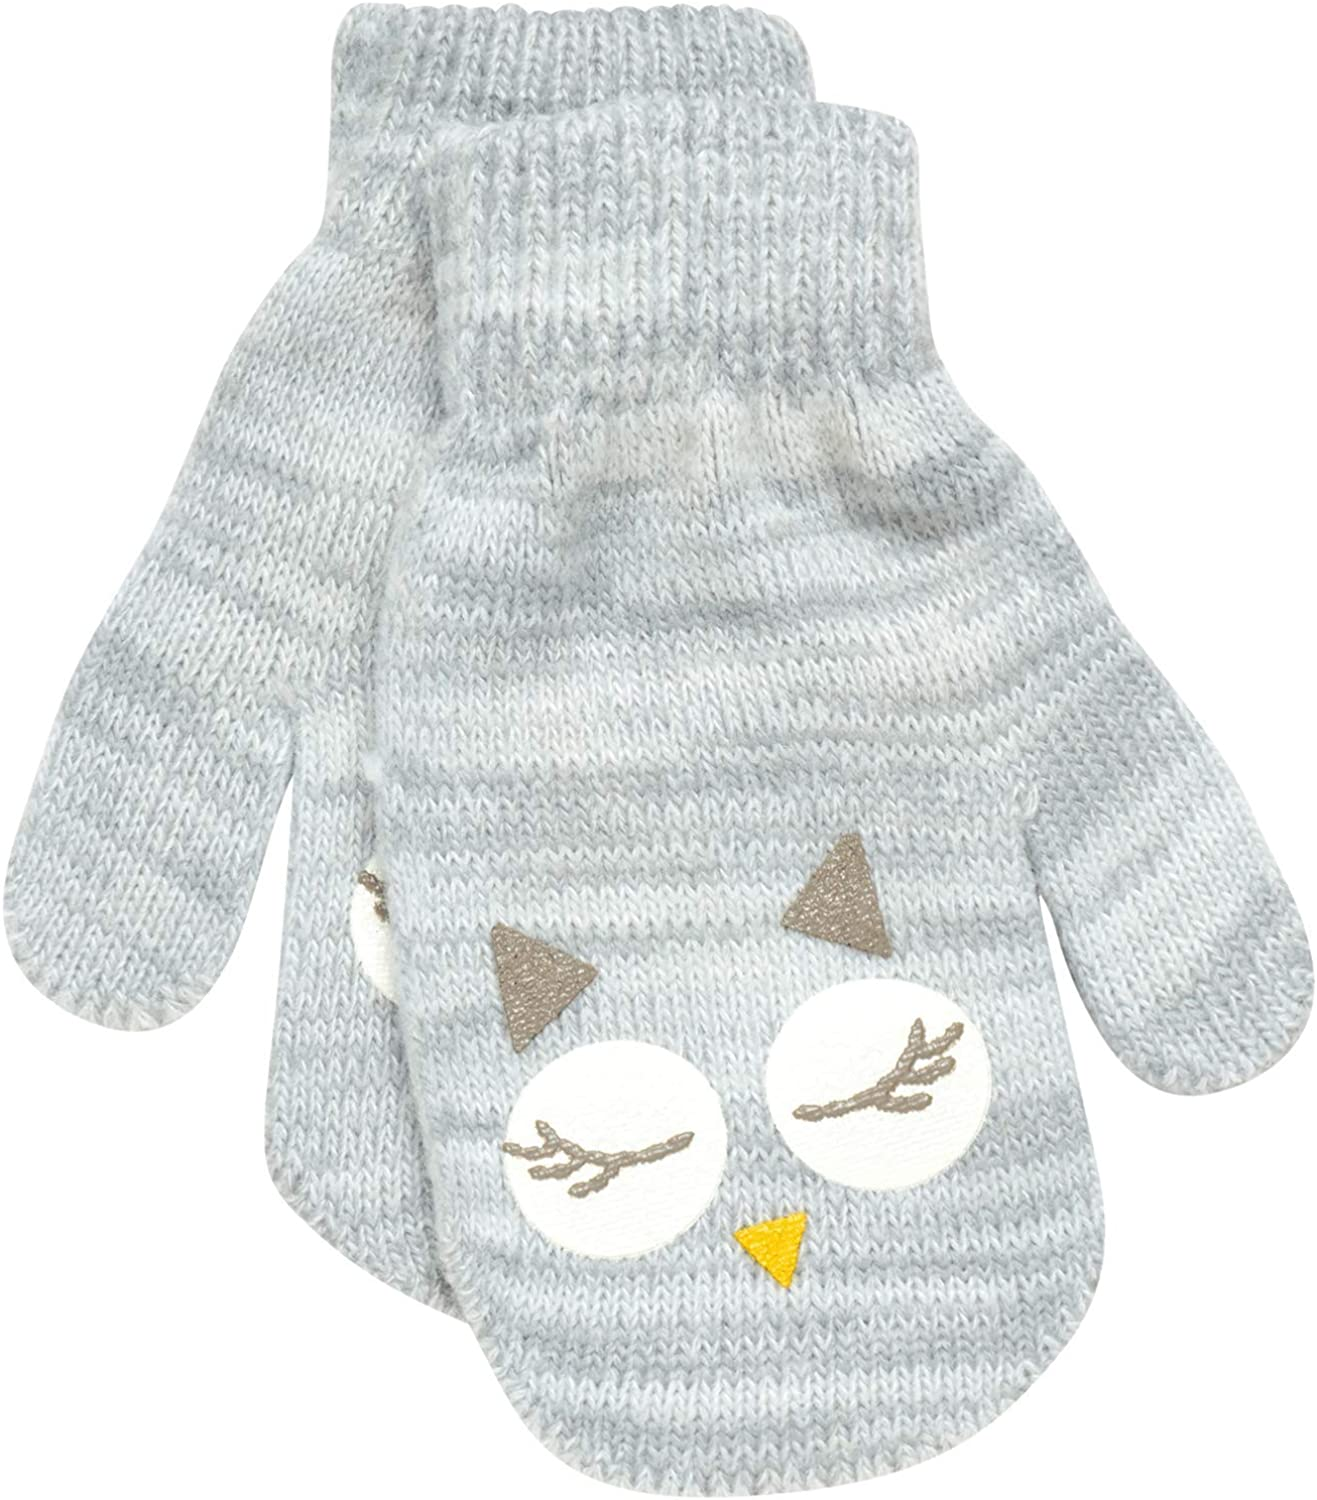 ABG Accessories Girls Critter Winter Hat and 2 Pair Gloves or Mittens Toddler//Little Girls